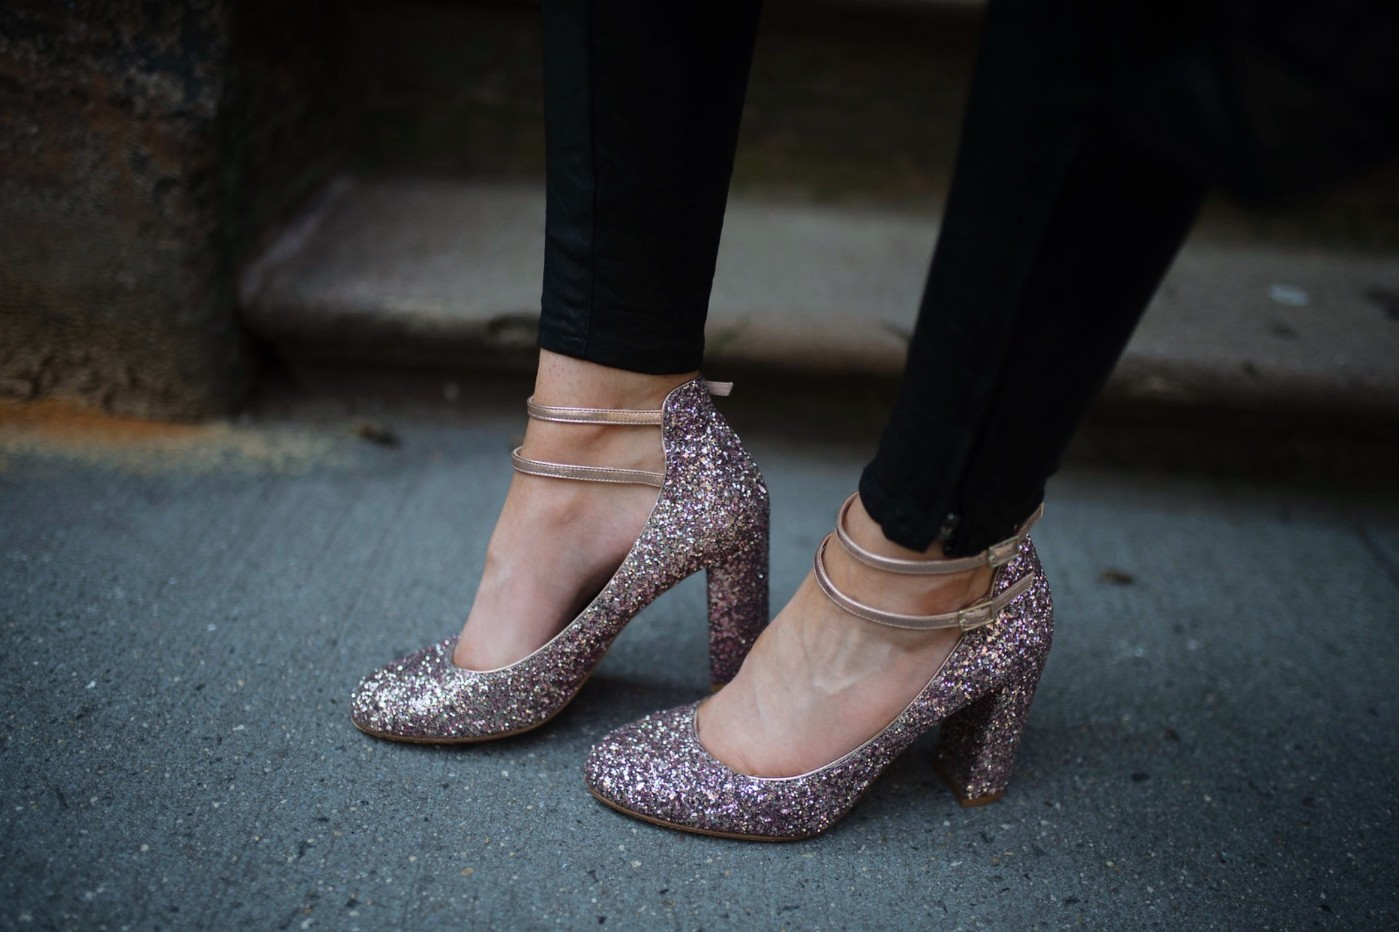 kate spade pink glitter heels weddnig shoes-Blush-Sweater-Ruffles-j-brand-black-leather-pants-new-york-street-style-nyc-fashion-blogger-outfit-ideas-style-elixir-lauren-slade